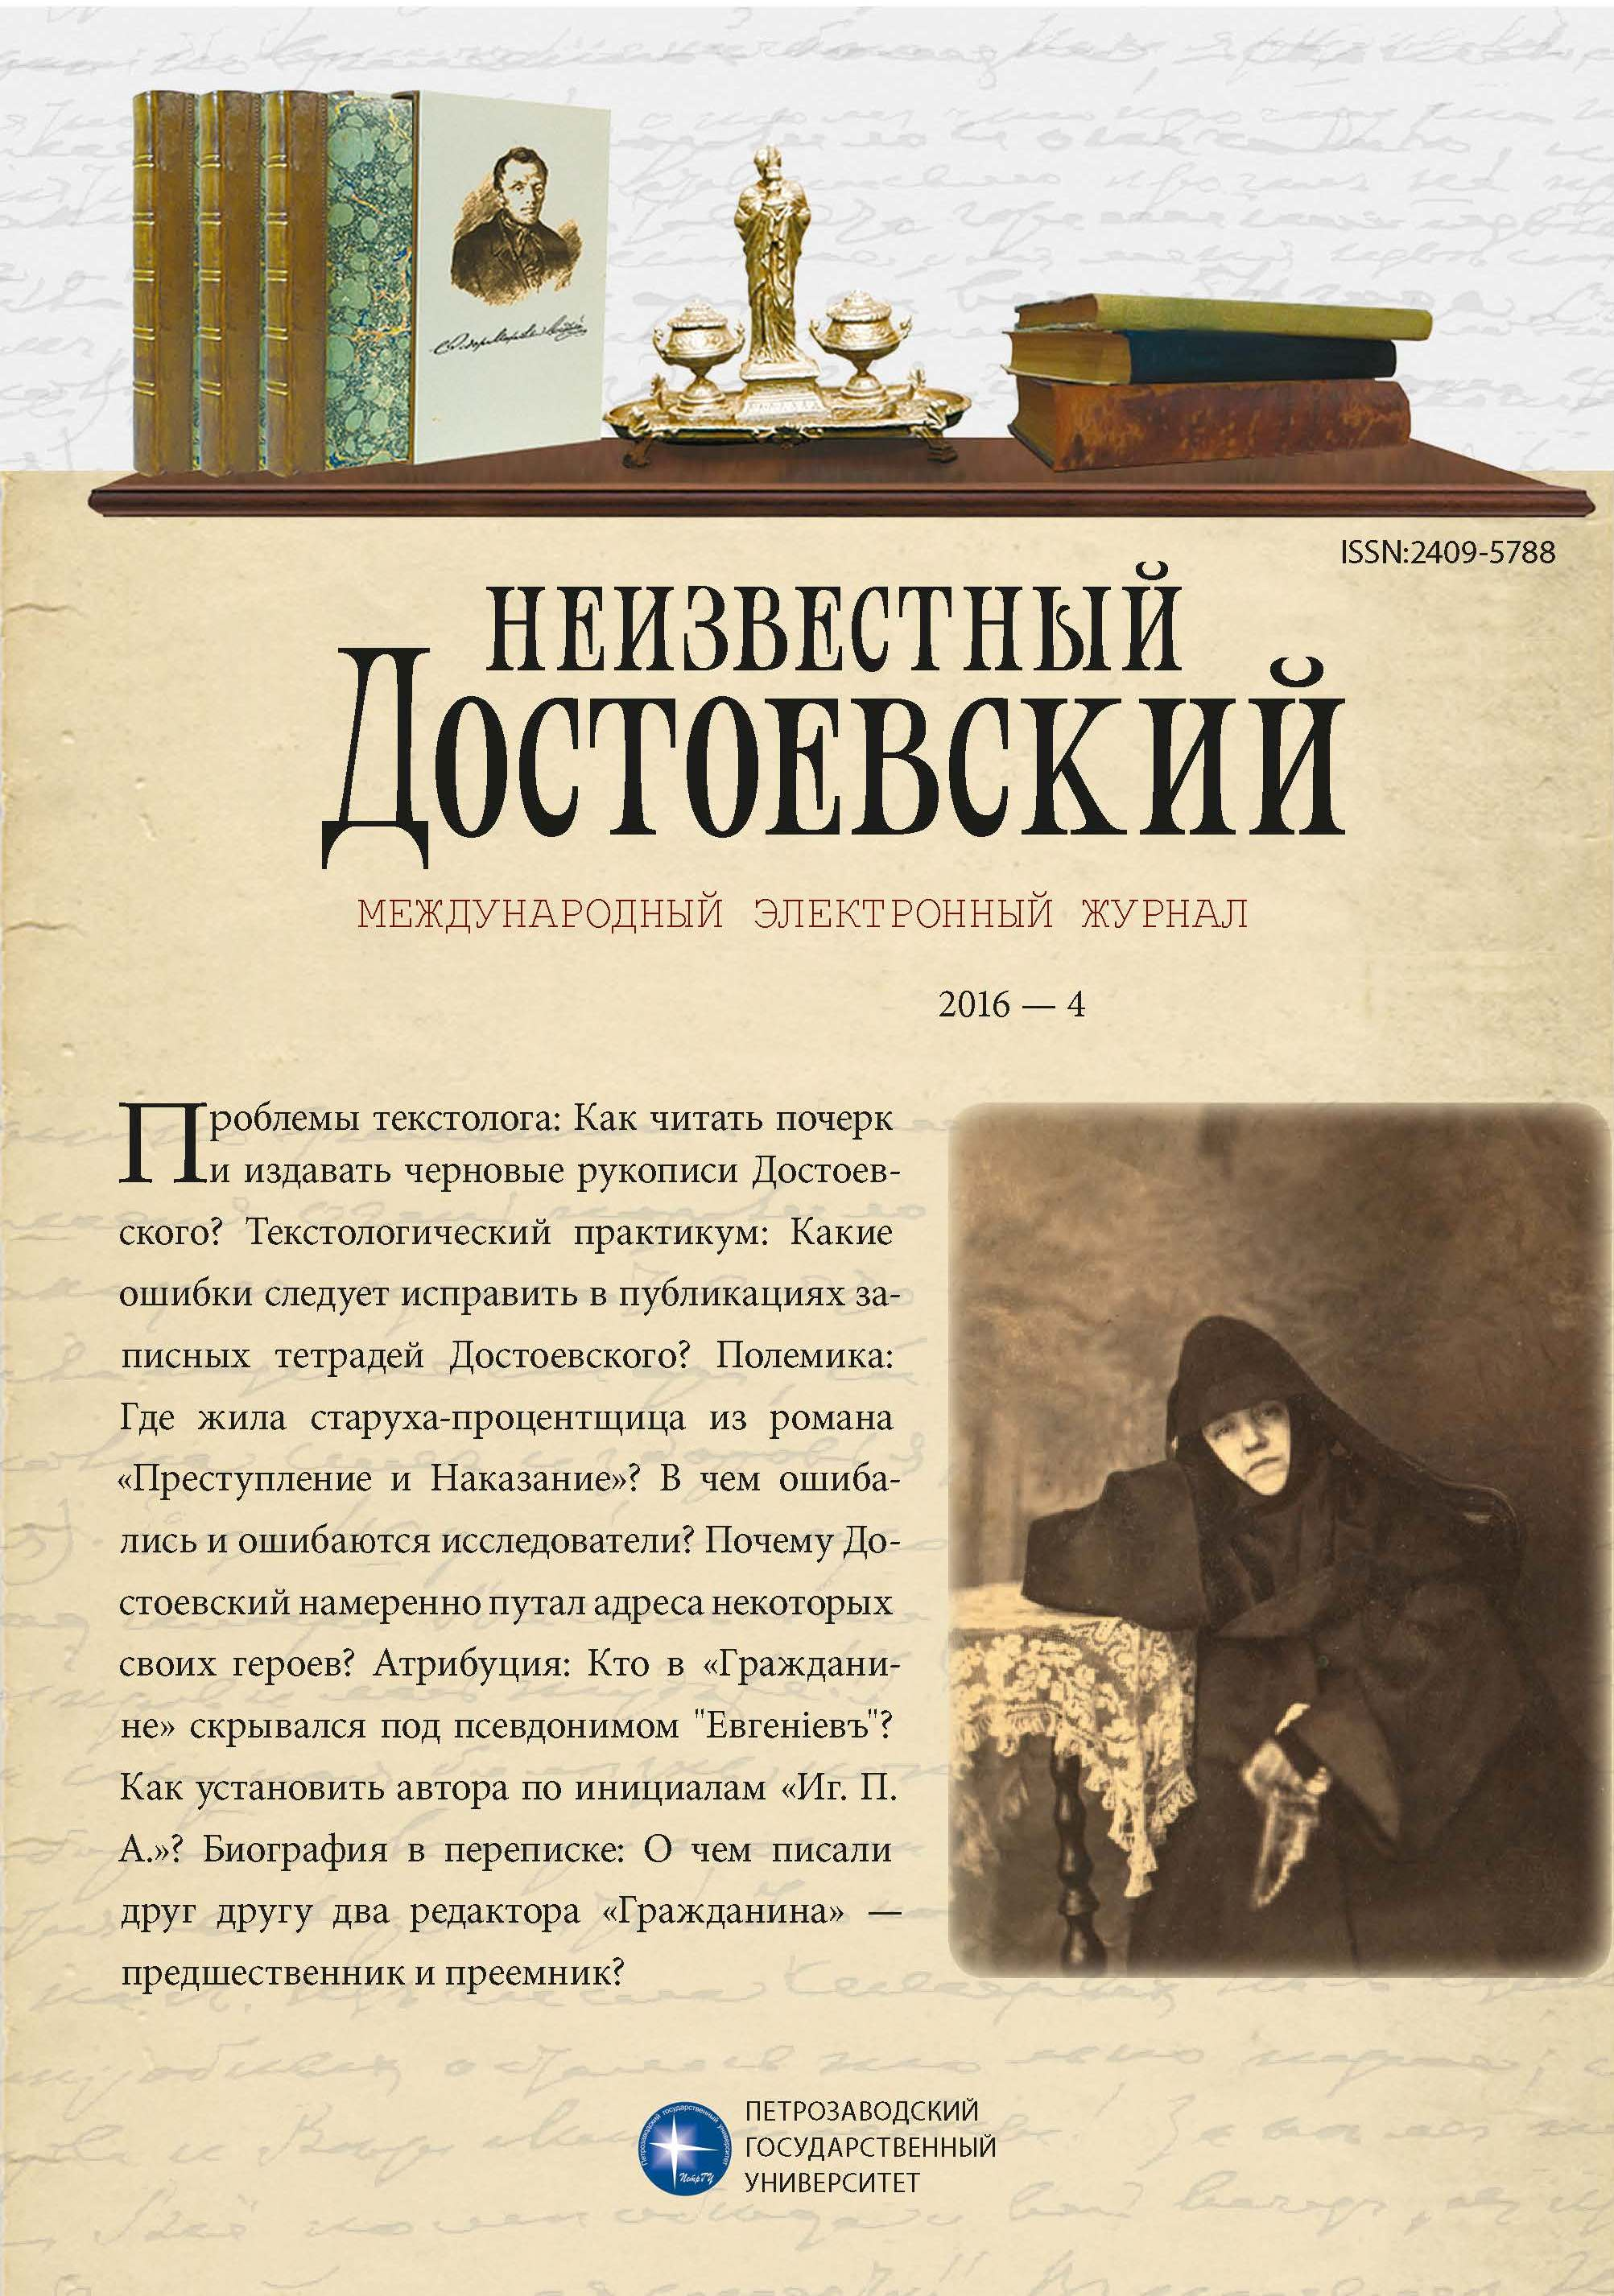 The Problems of the Publication of Dostoevsky's Manuscripts (Based on Draft Manuscripts) Cover Image